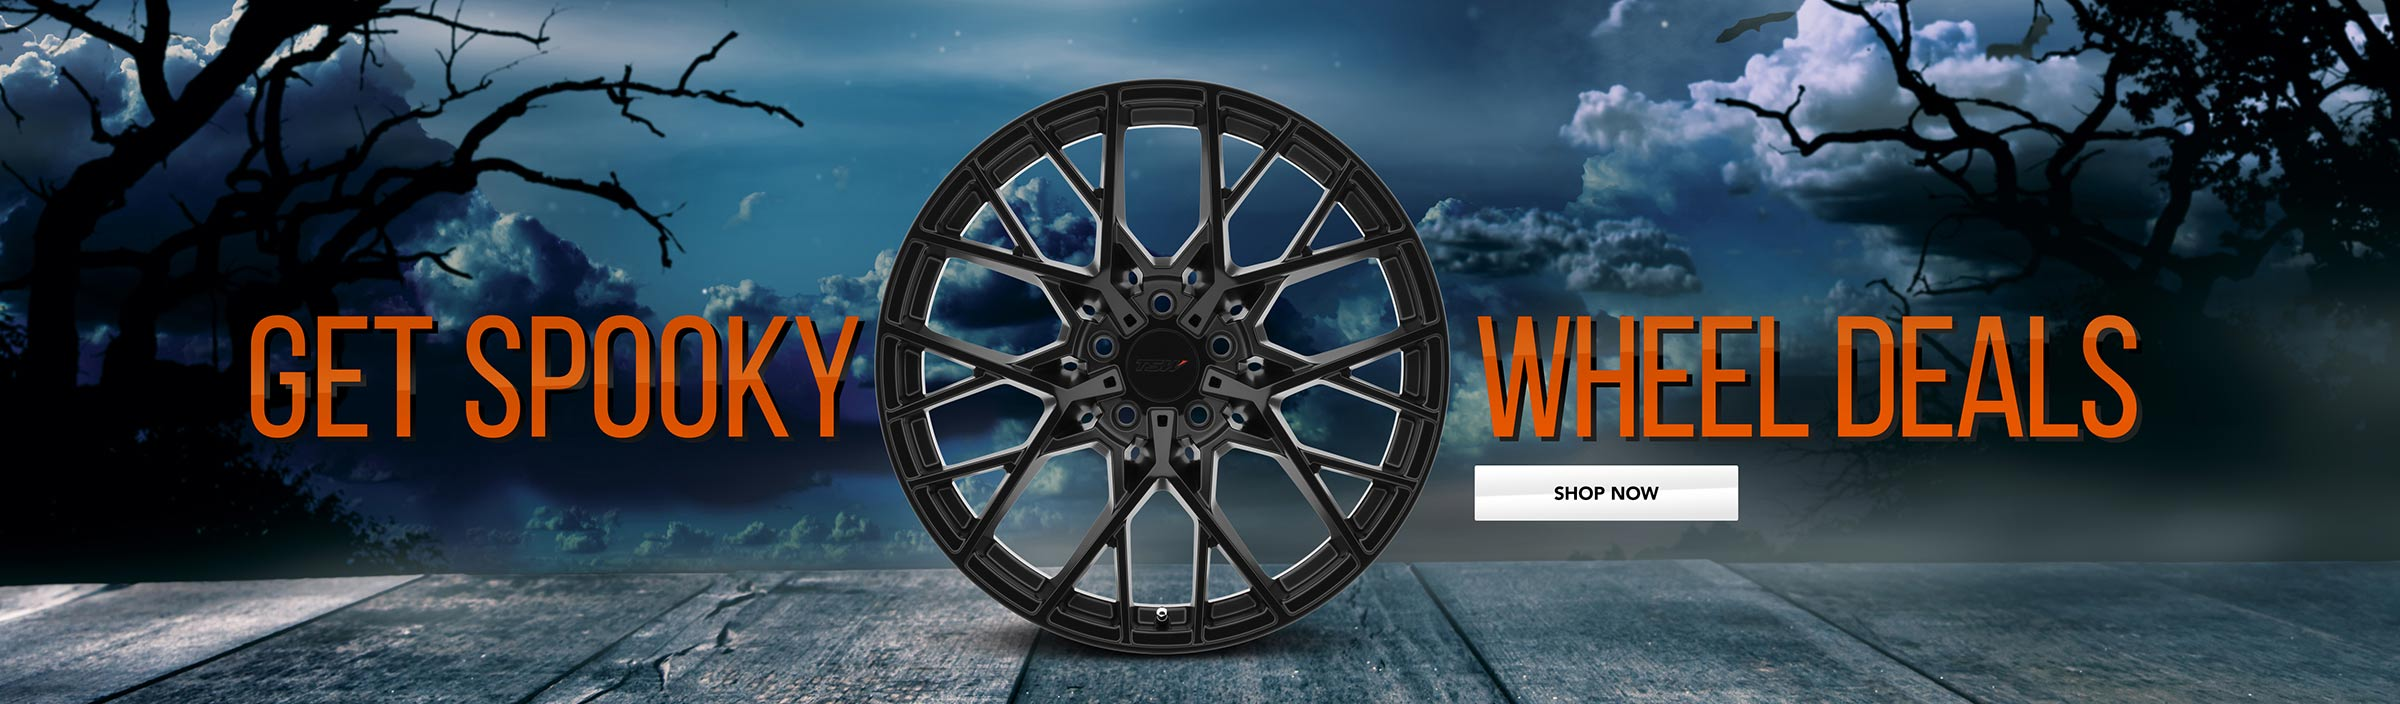 Discount Tire Direct Tires And Wheels For Sale Online - Show me rims on my car